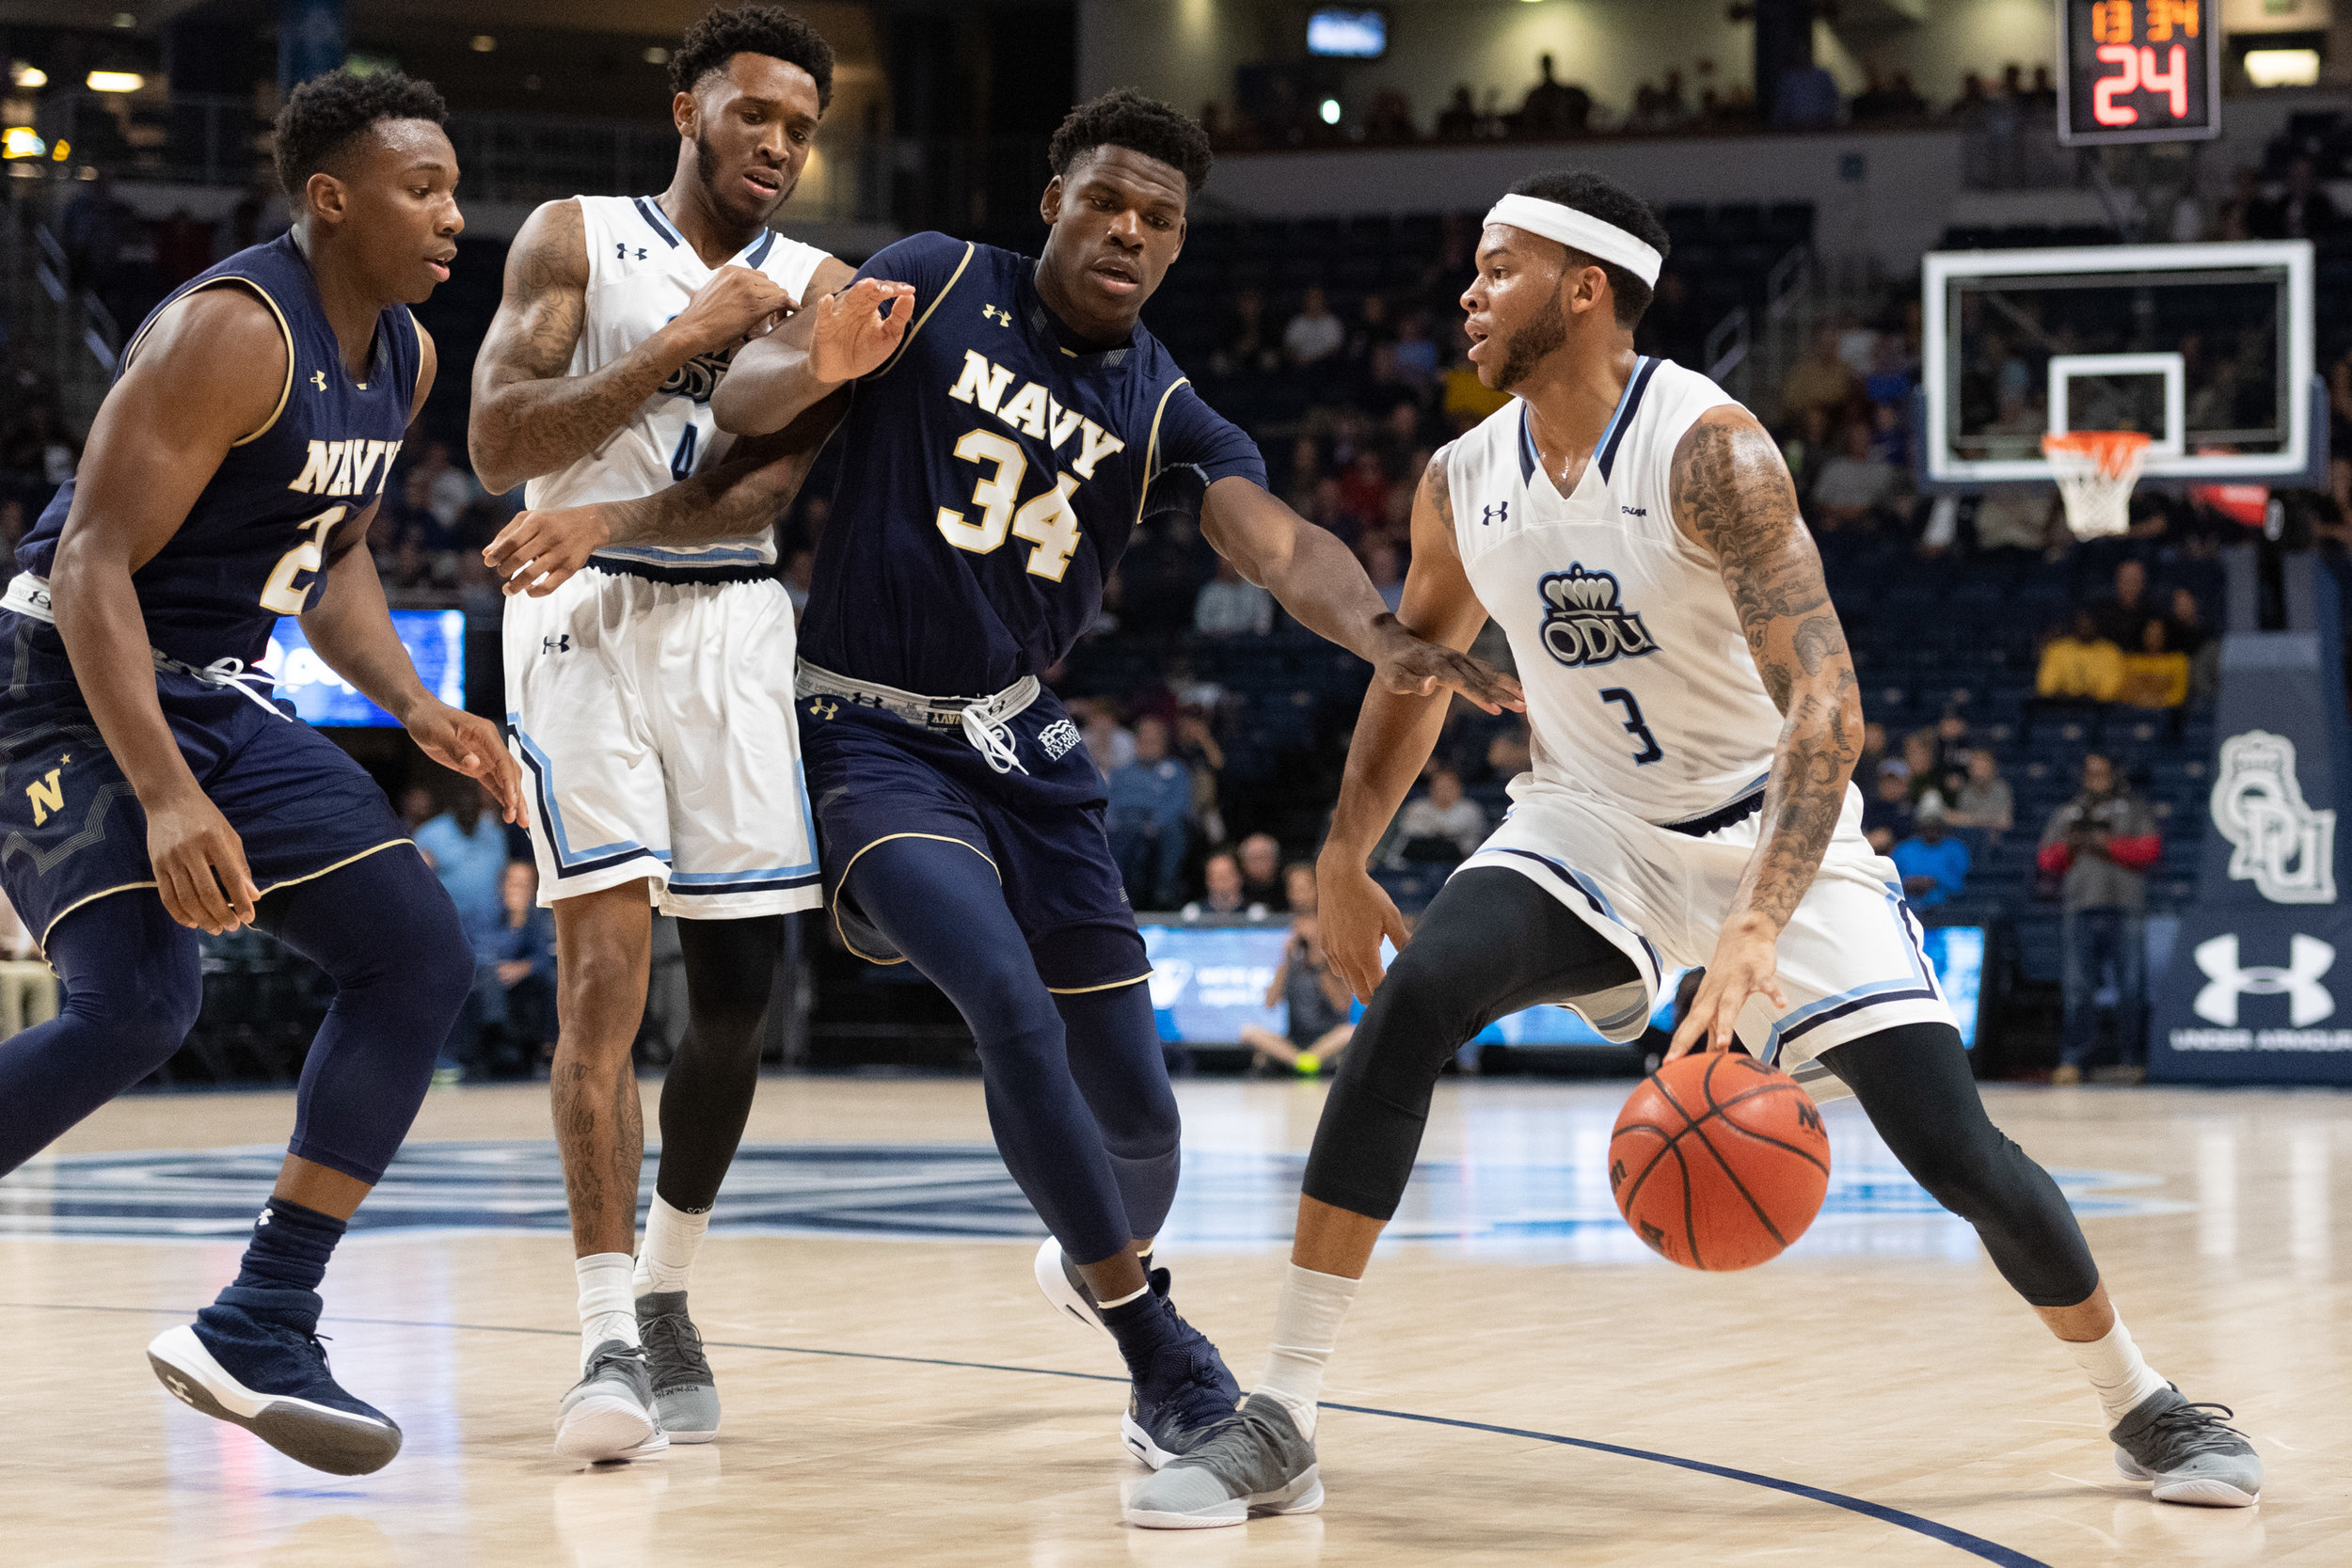 Men's Basketball: Navy vs Old Dominion